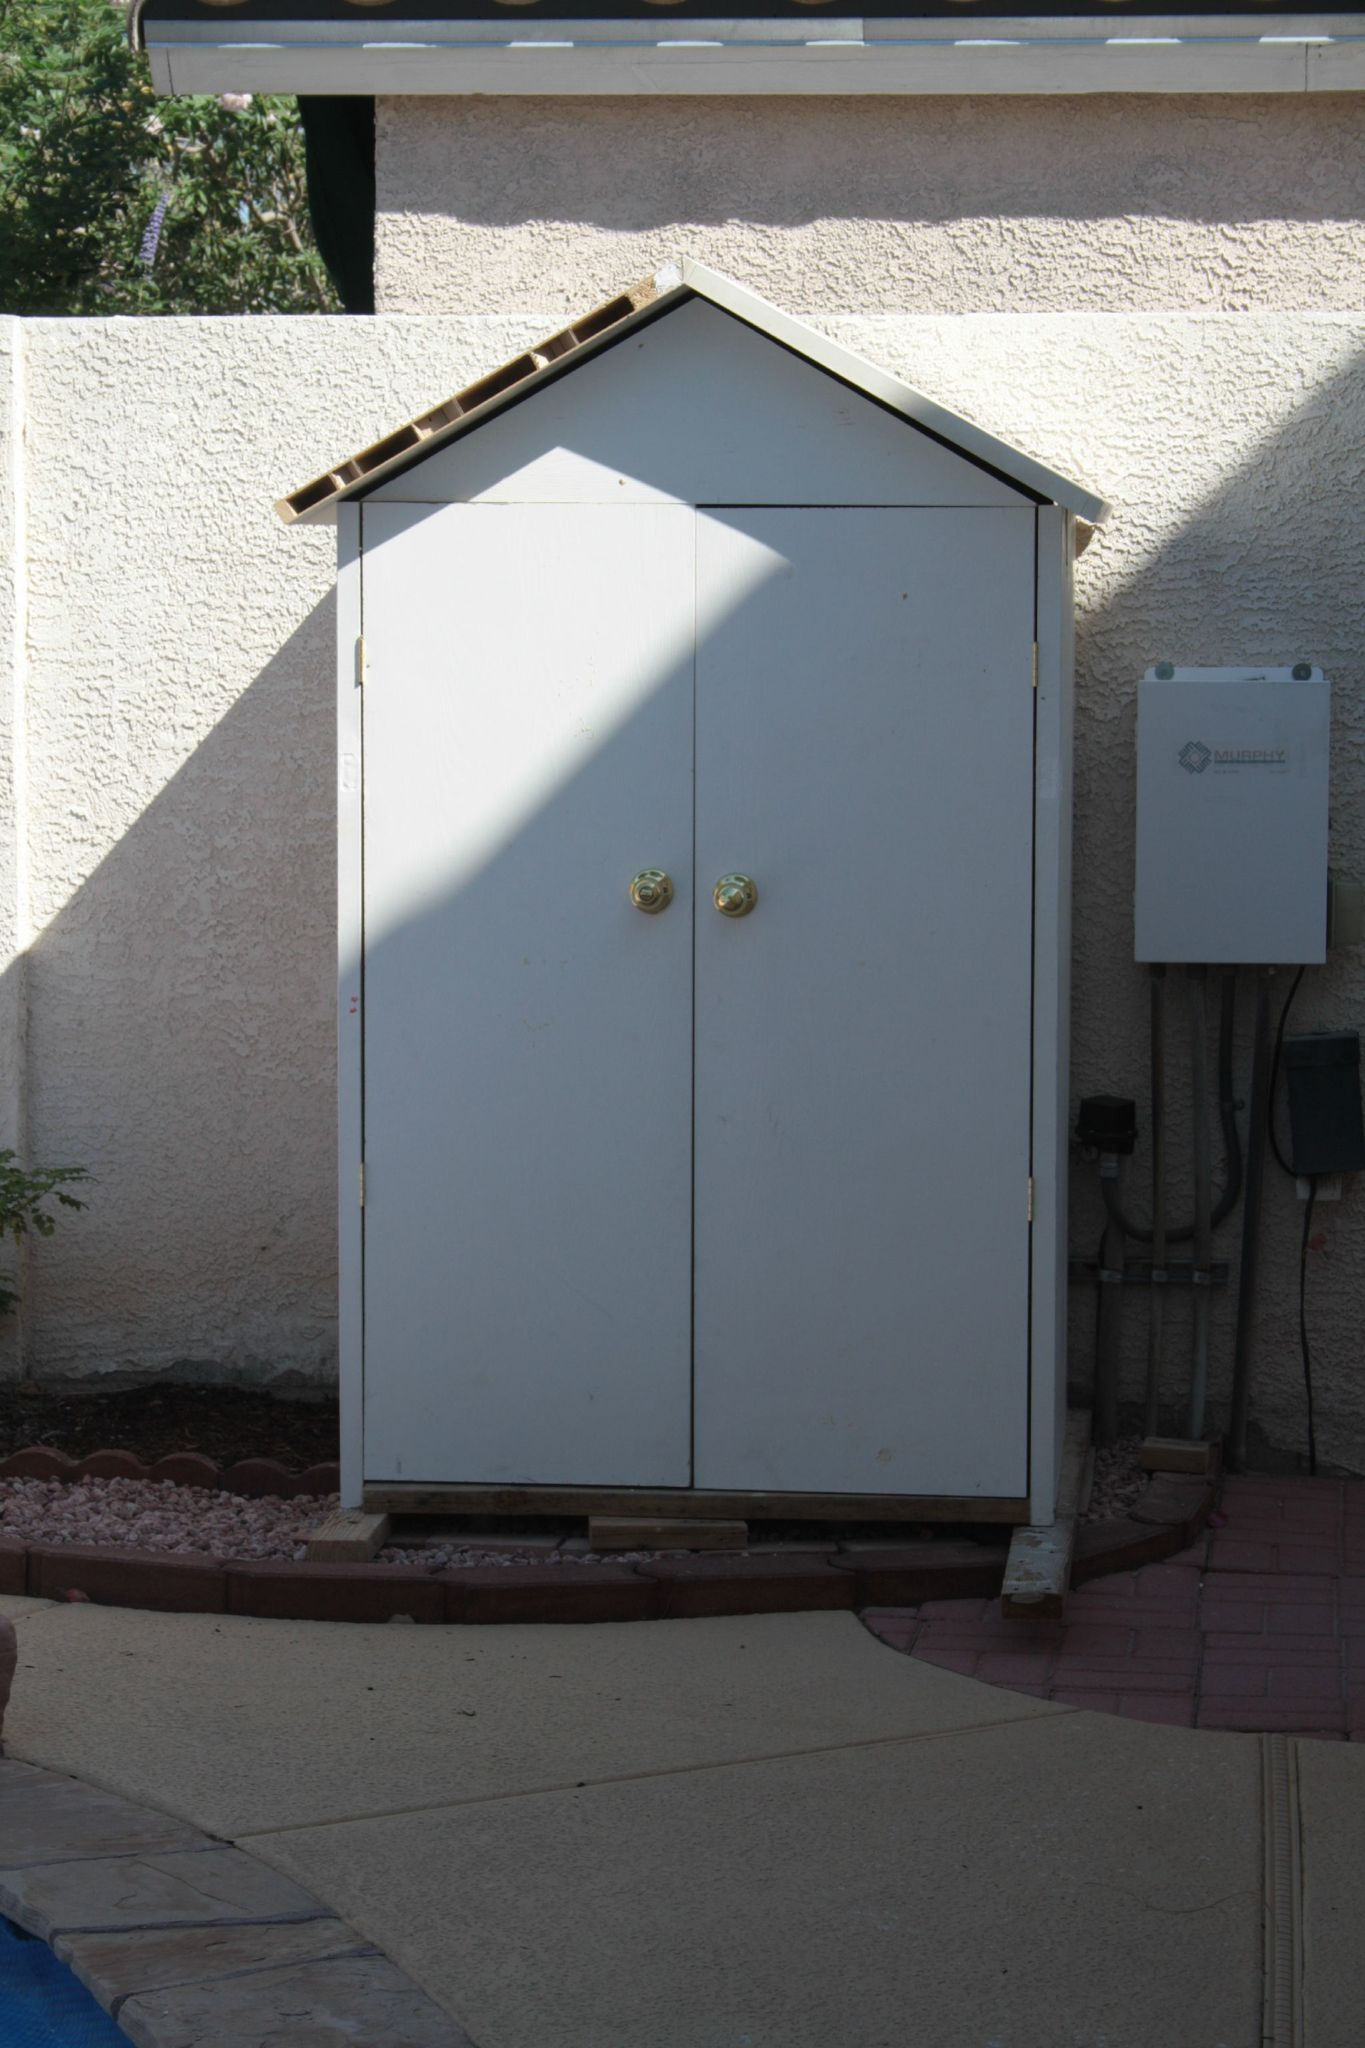 Cabanon pour equipement de piscine l escale for Cabanon piscine